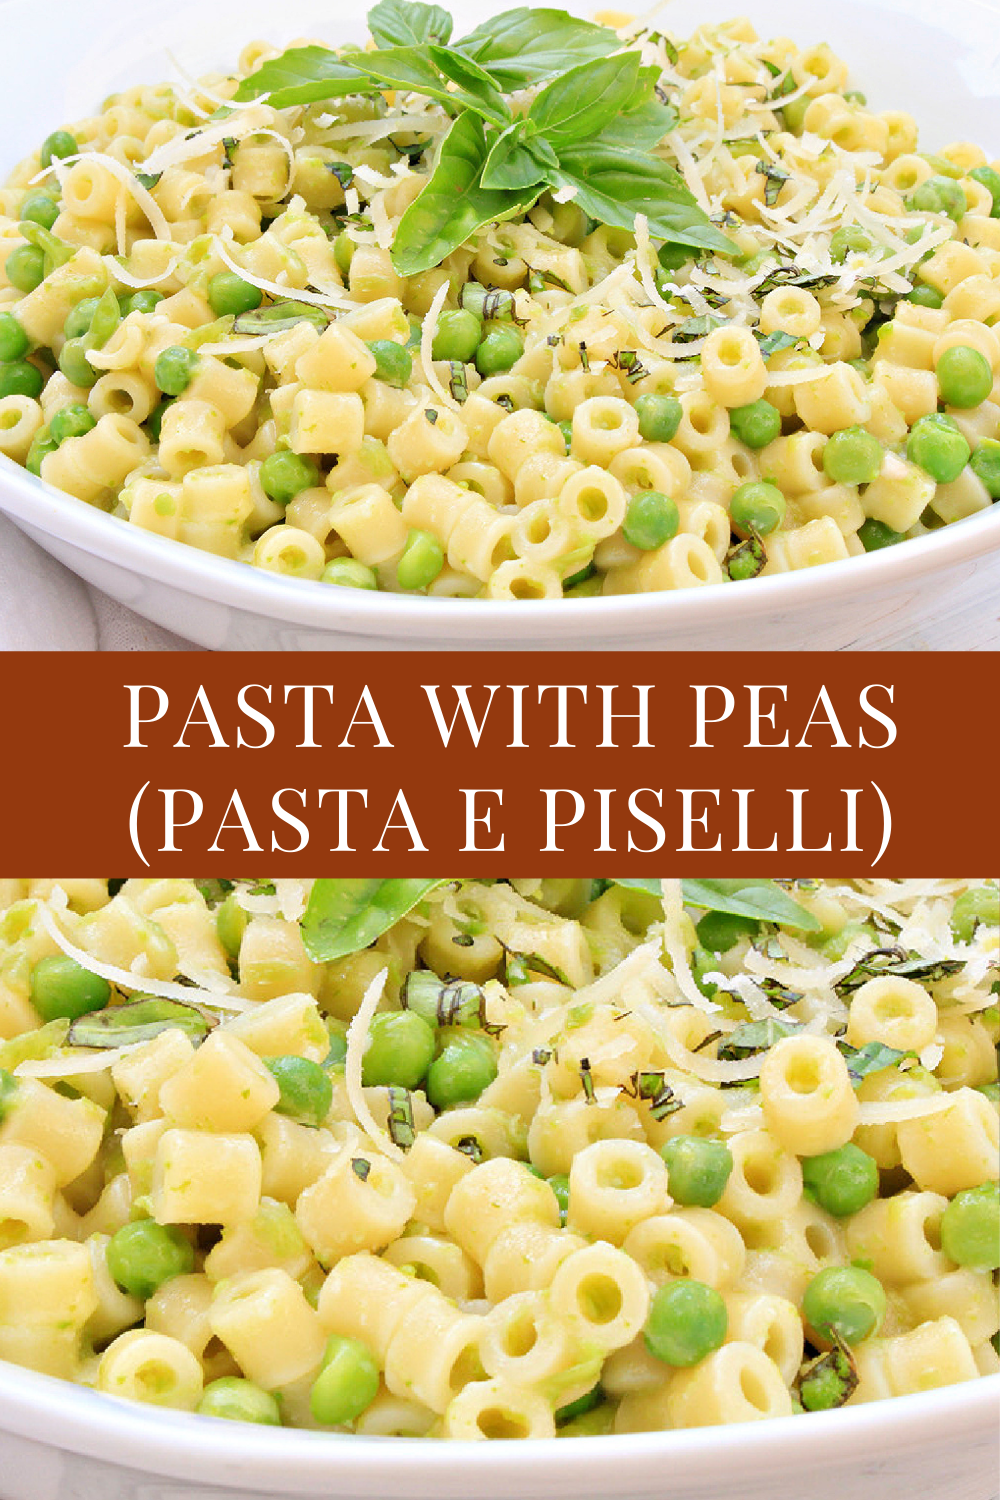 Pasta with Peas is an easy, creamy one-pot dinner. Kids & adults alike love the simplicity of this quick & easy Italian classic!  via @thiswifecooks